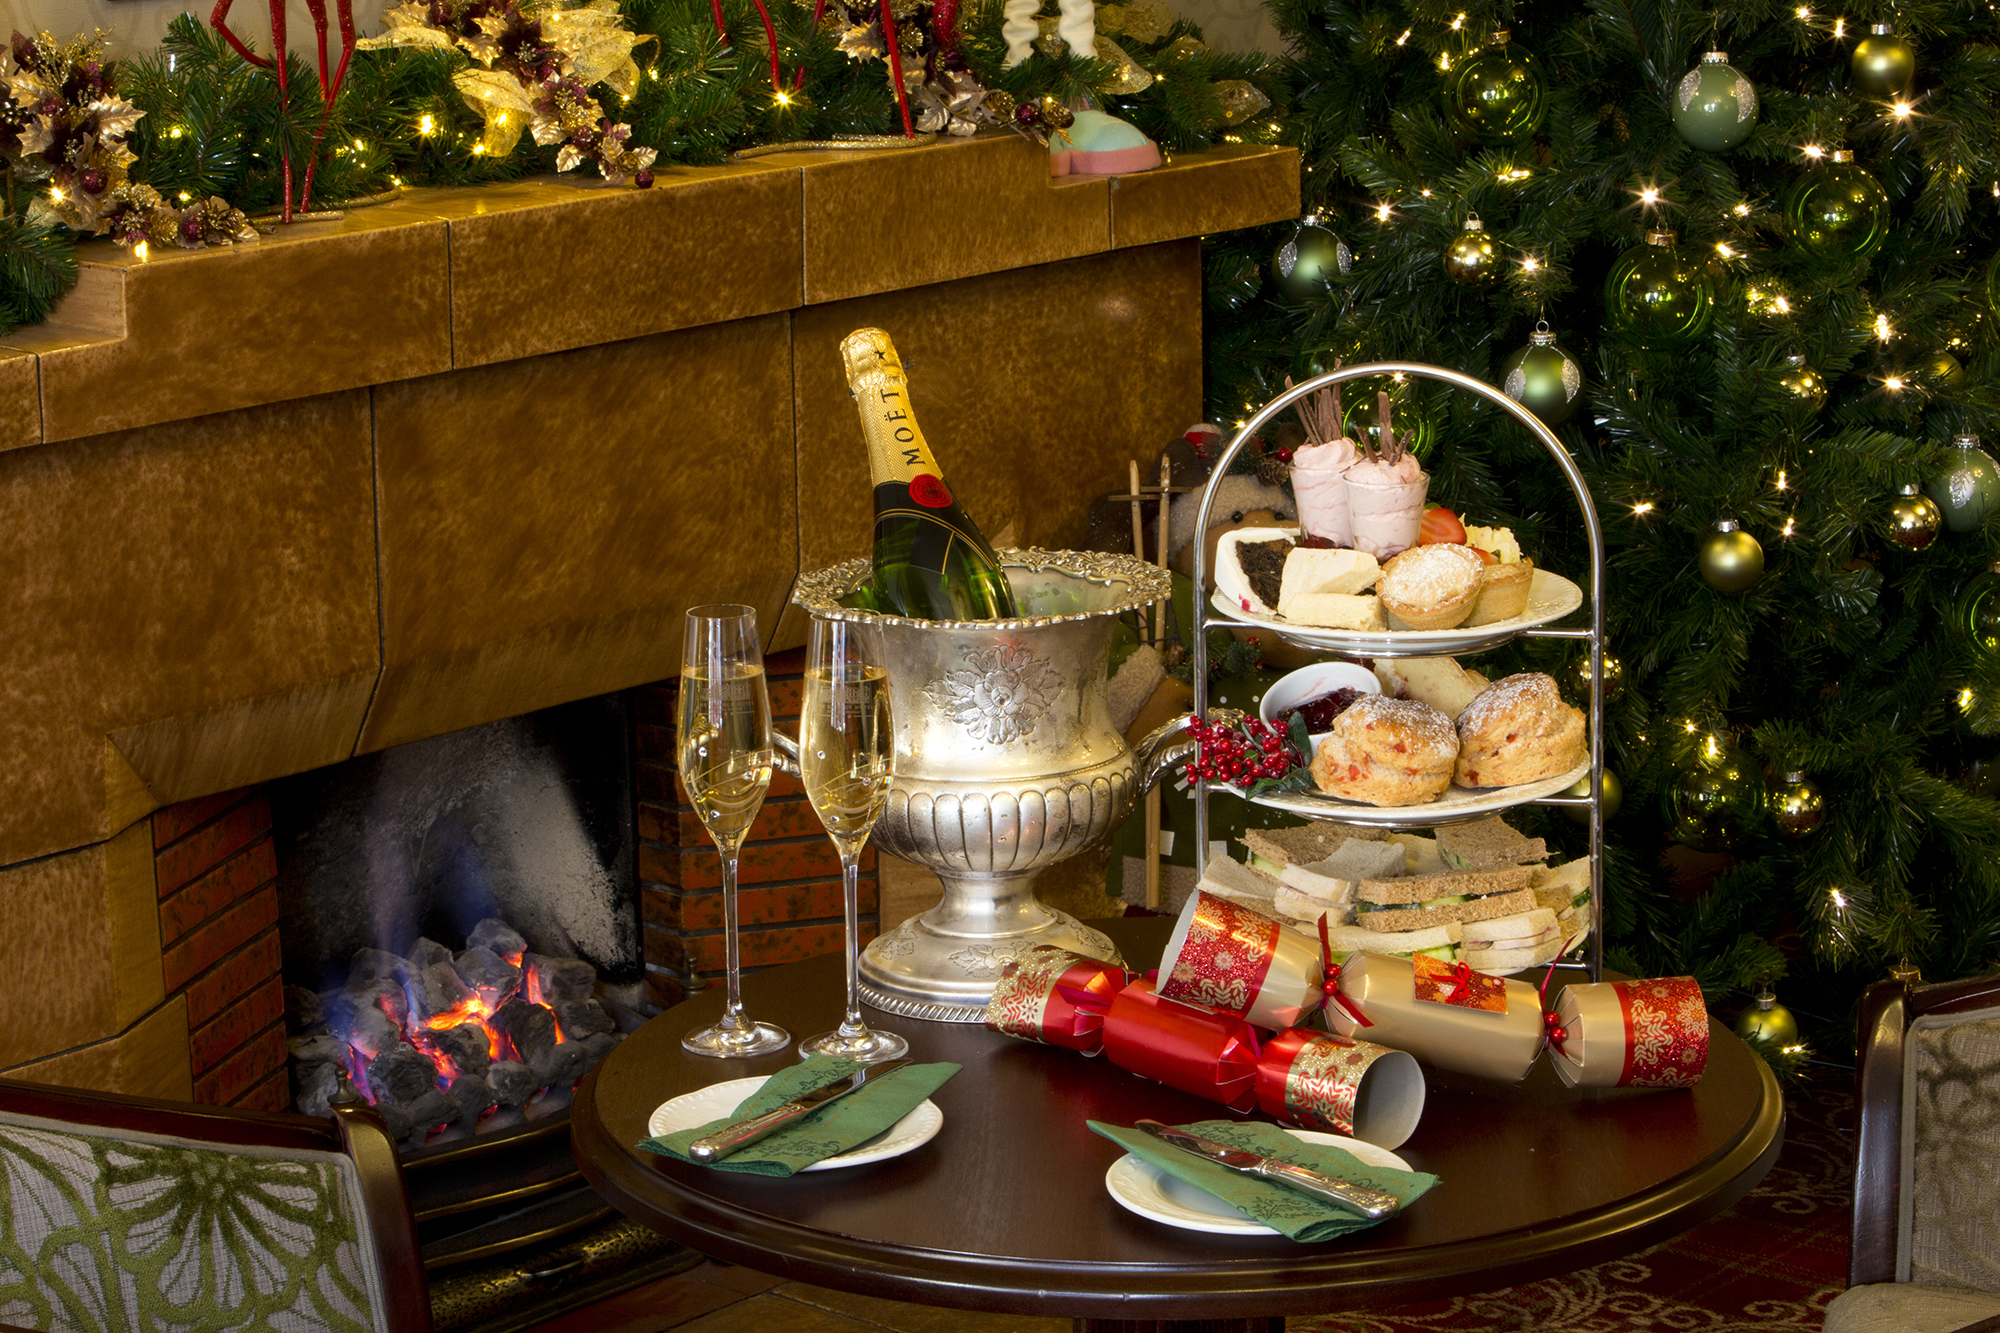 Skiddaw Hotel Festive Afternoon Tea